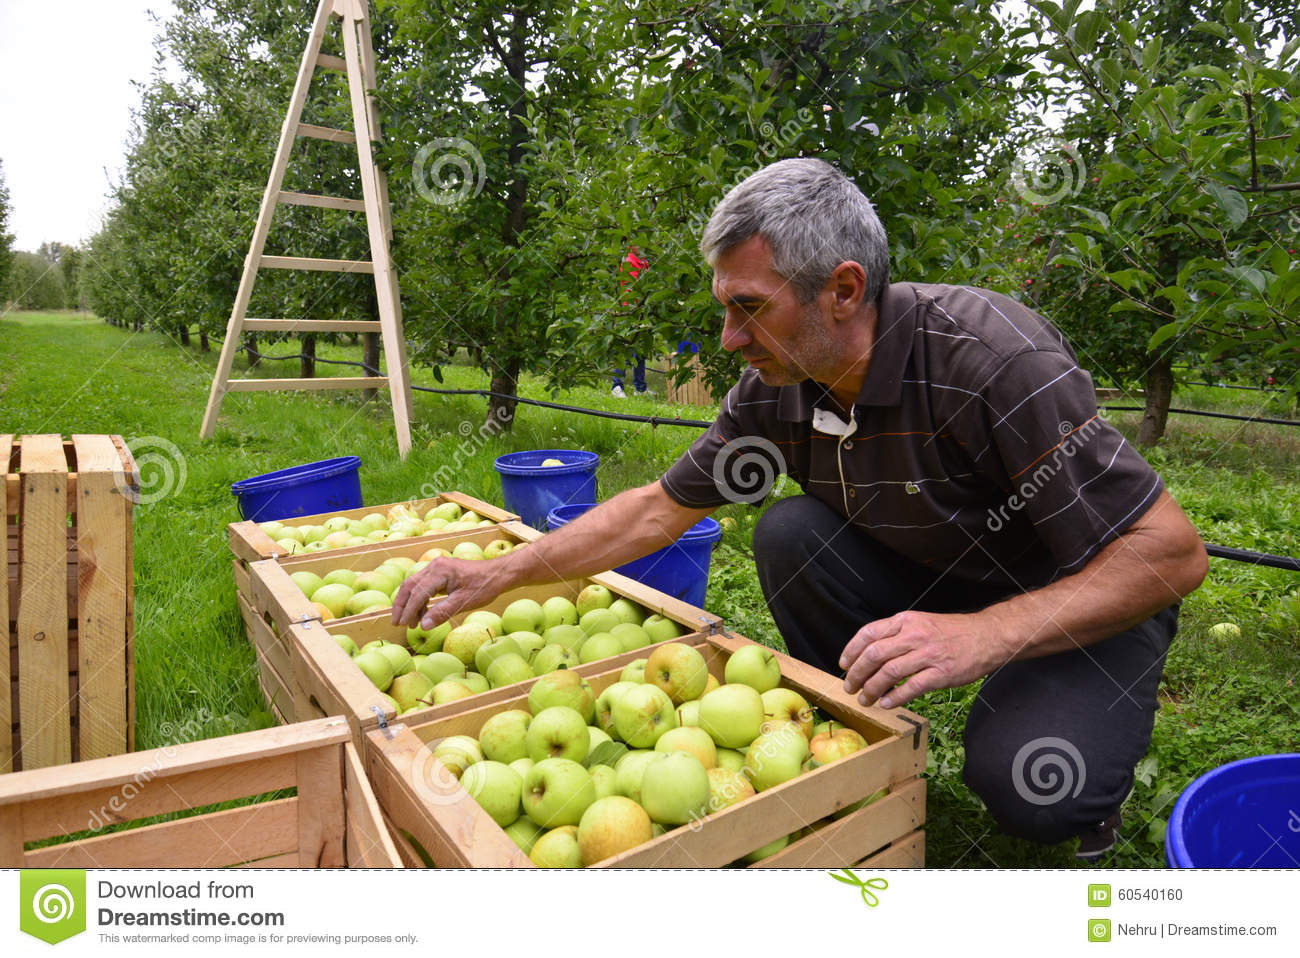 Man sorting apples in the orchard in Resen, Macedonia